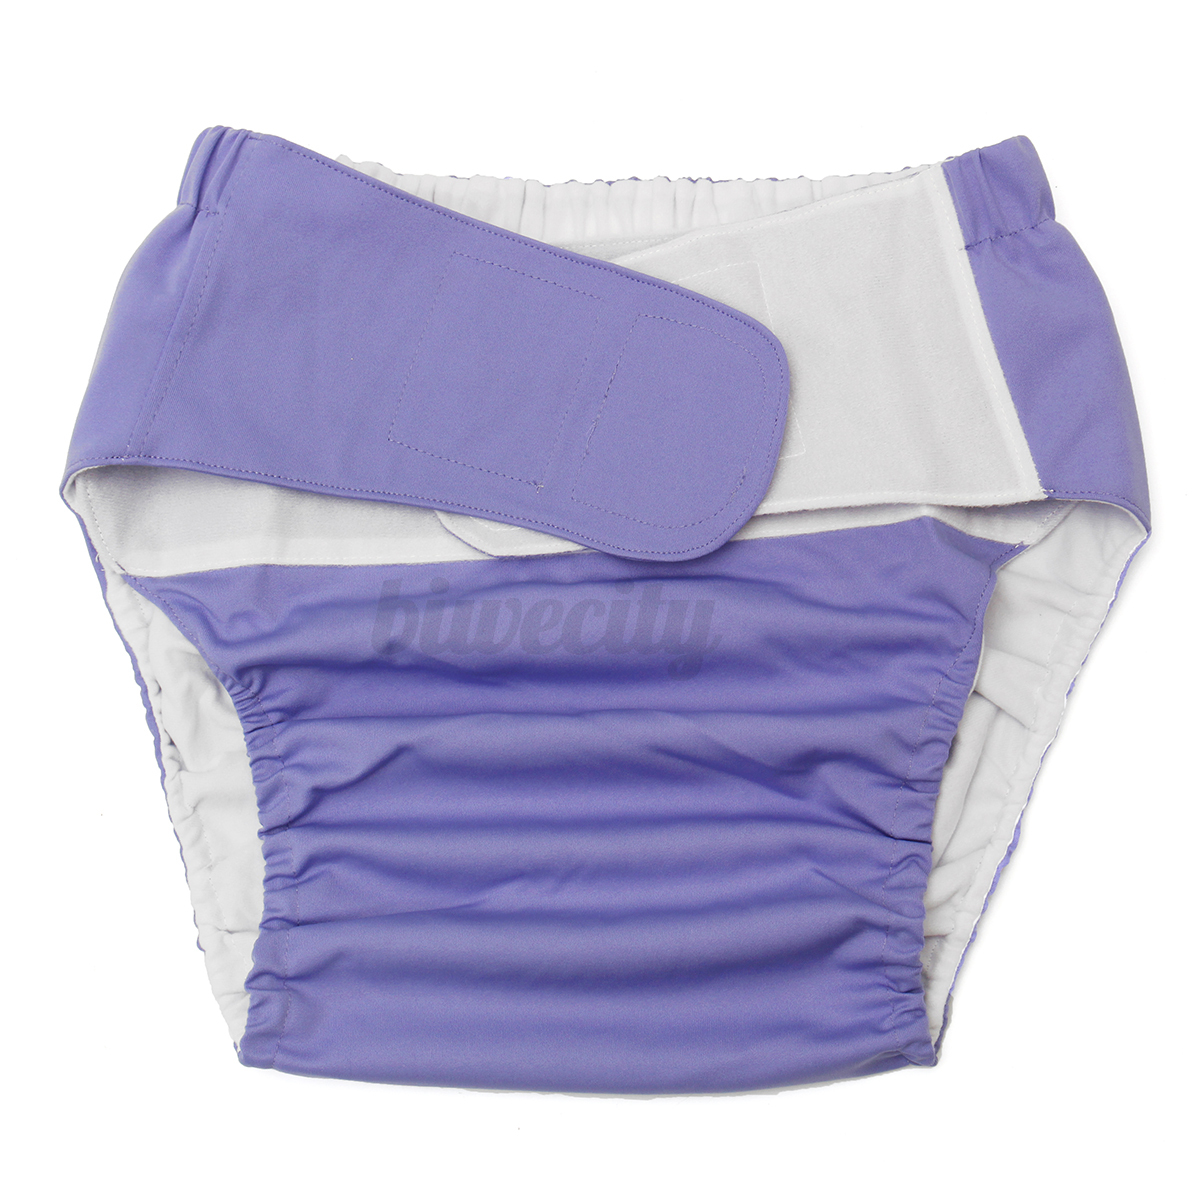 waterproof breathable adult cloth diaper pant for bedwetting incontinence aid ebay. Black Bedroom Furniture Sets. Home Design Ideas